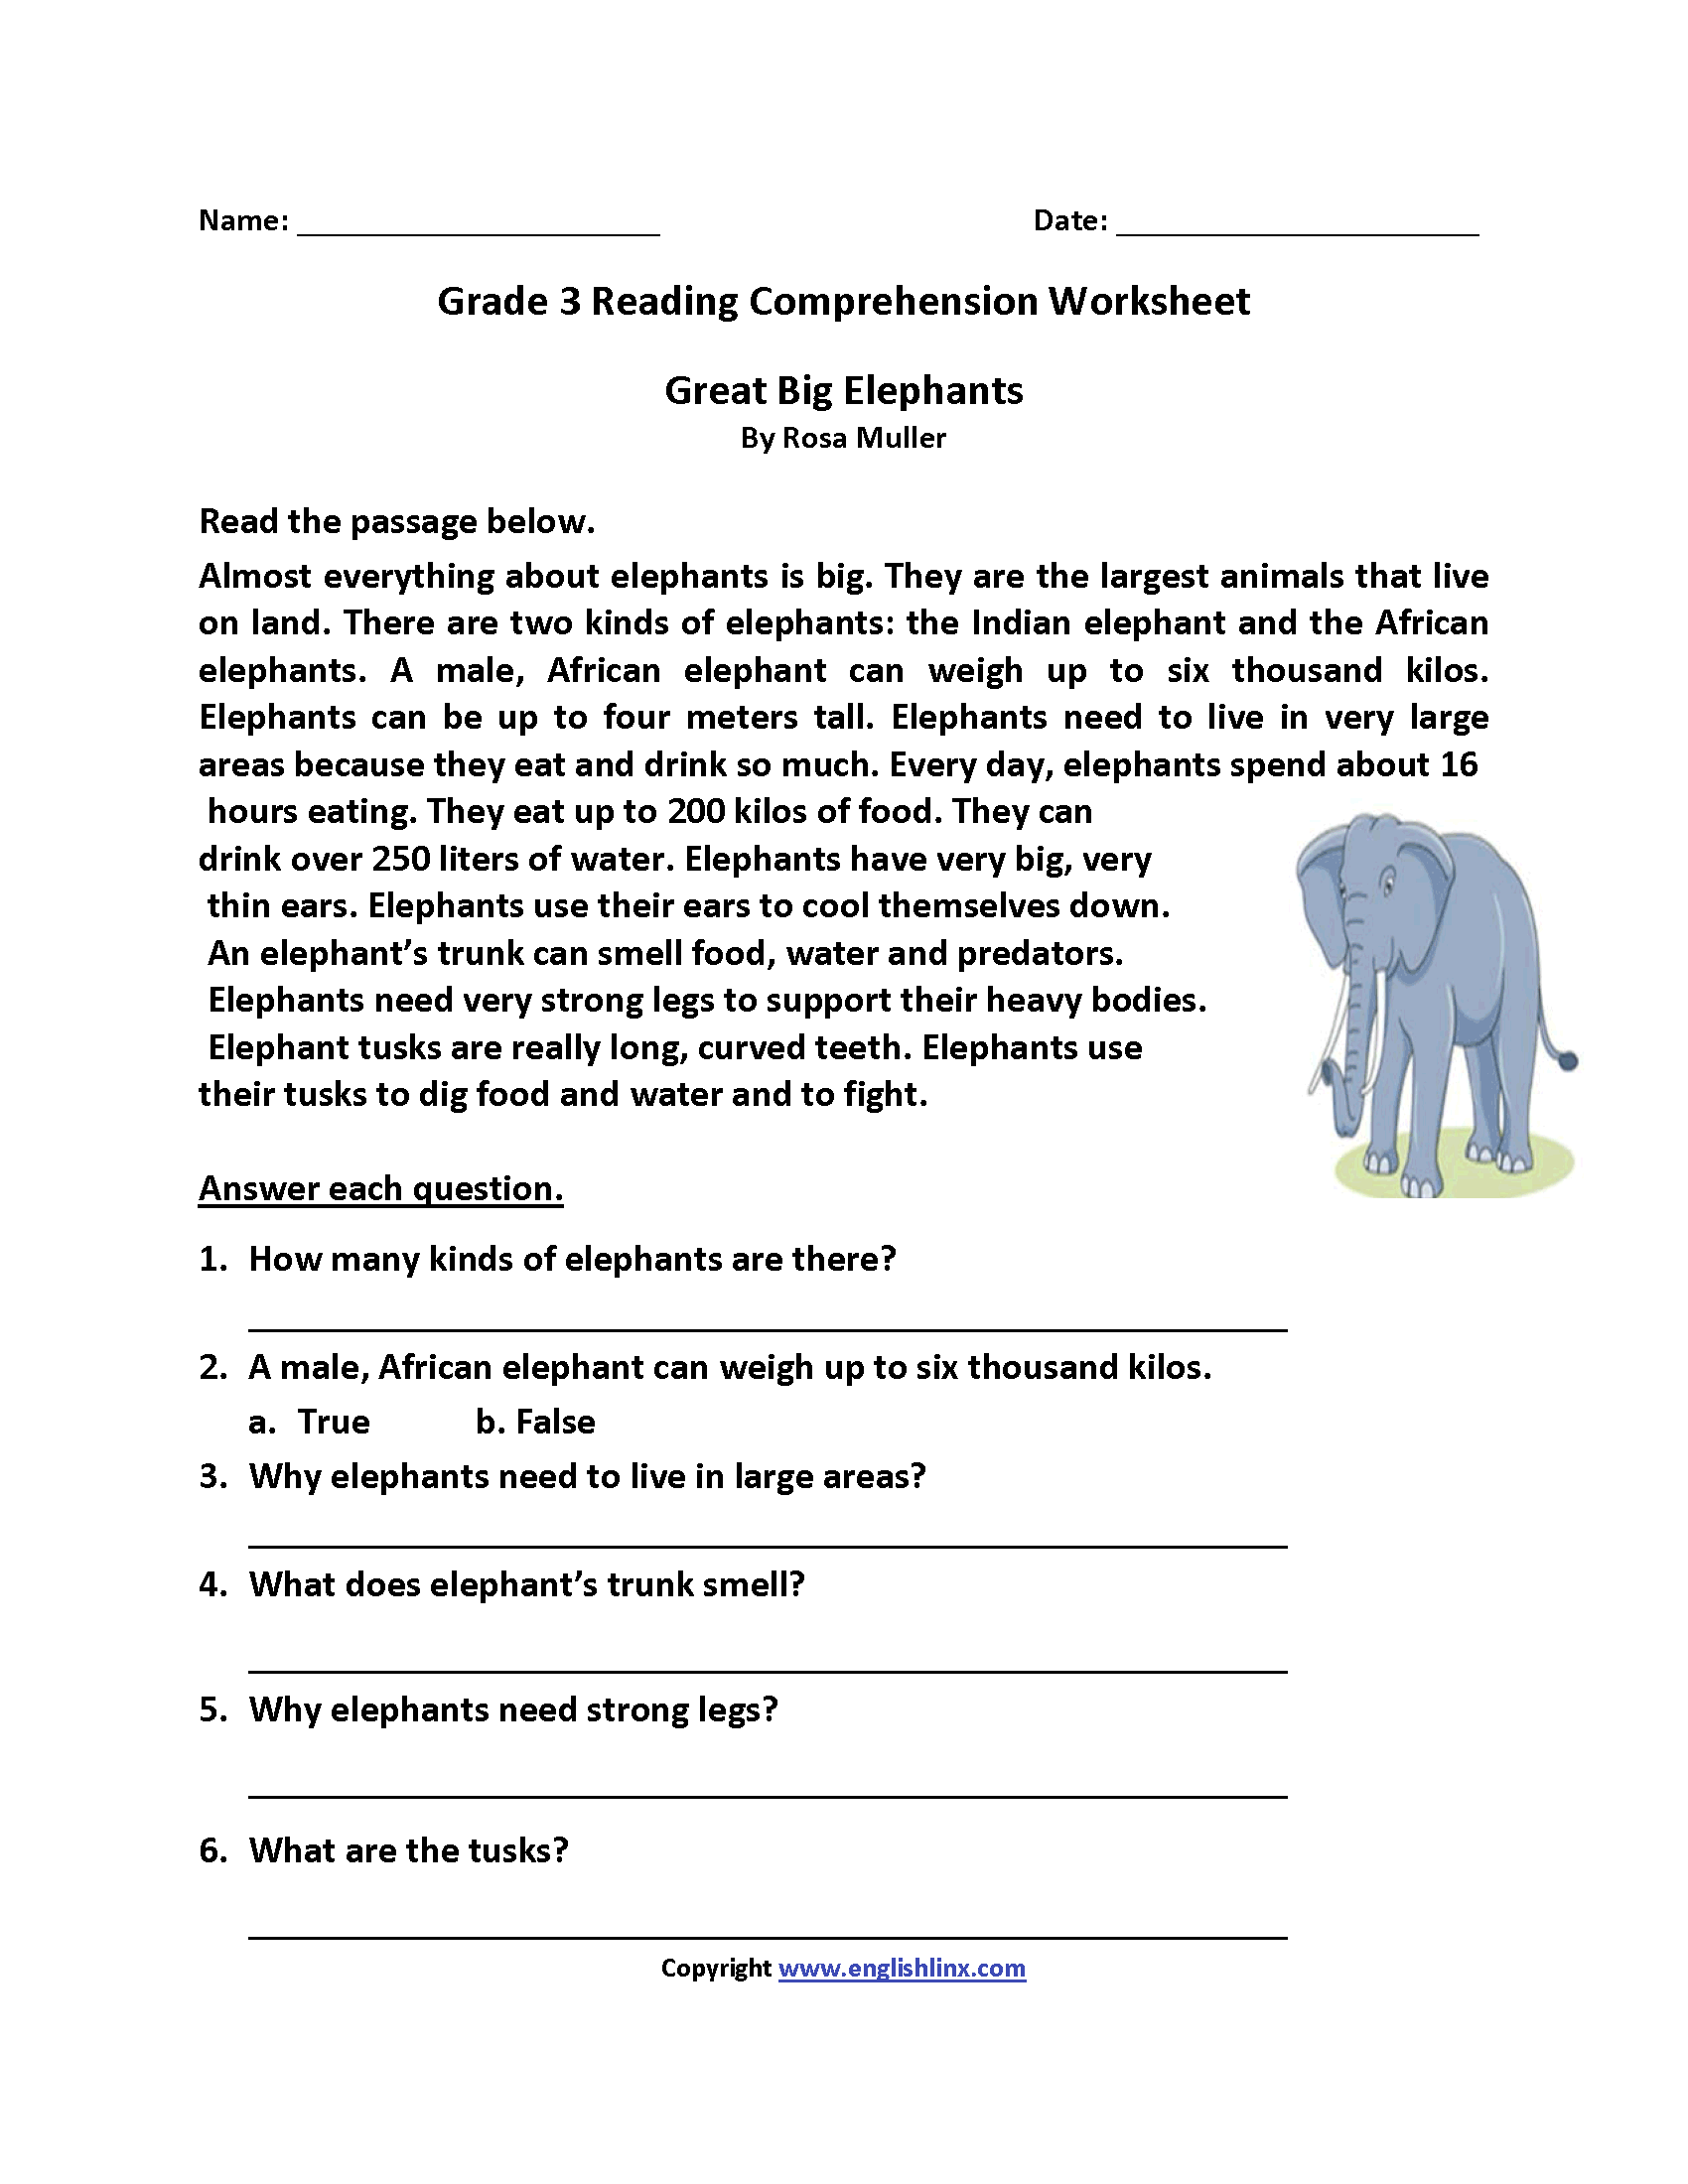 Great Big Elephants Third Grade Reading Worksheets